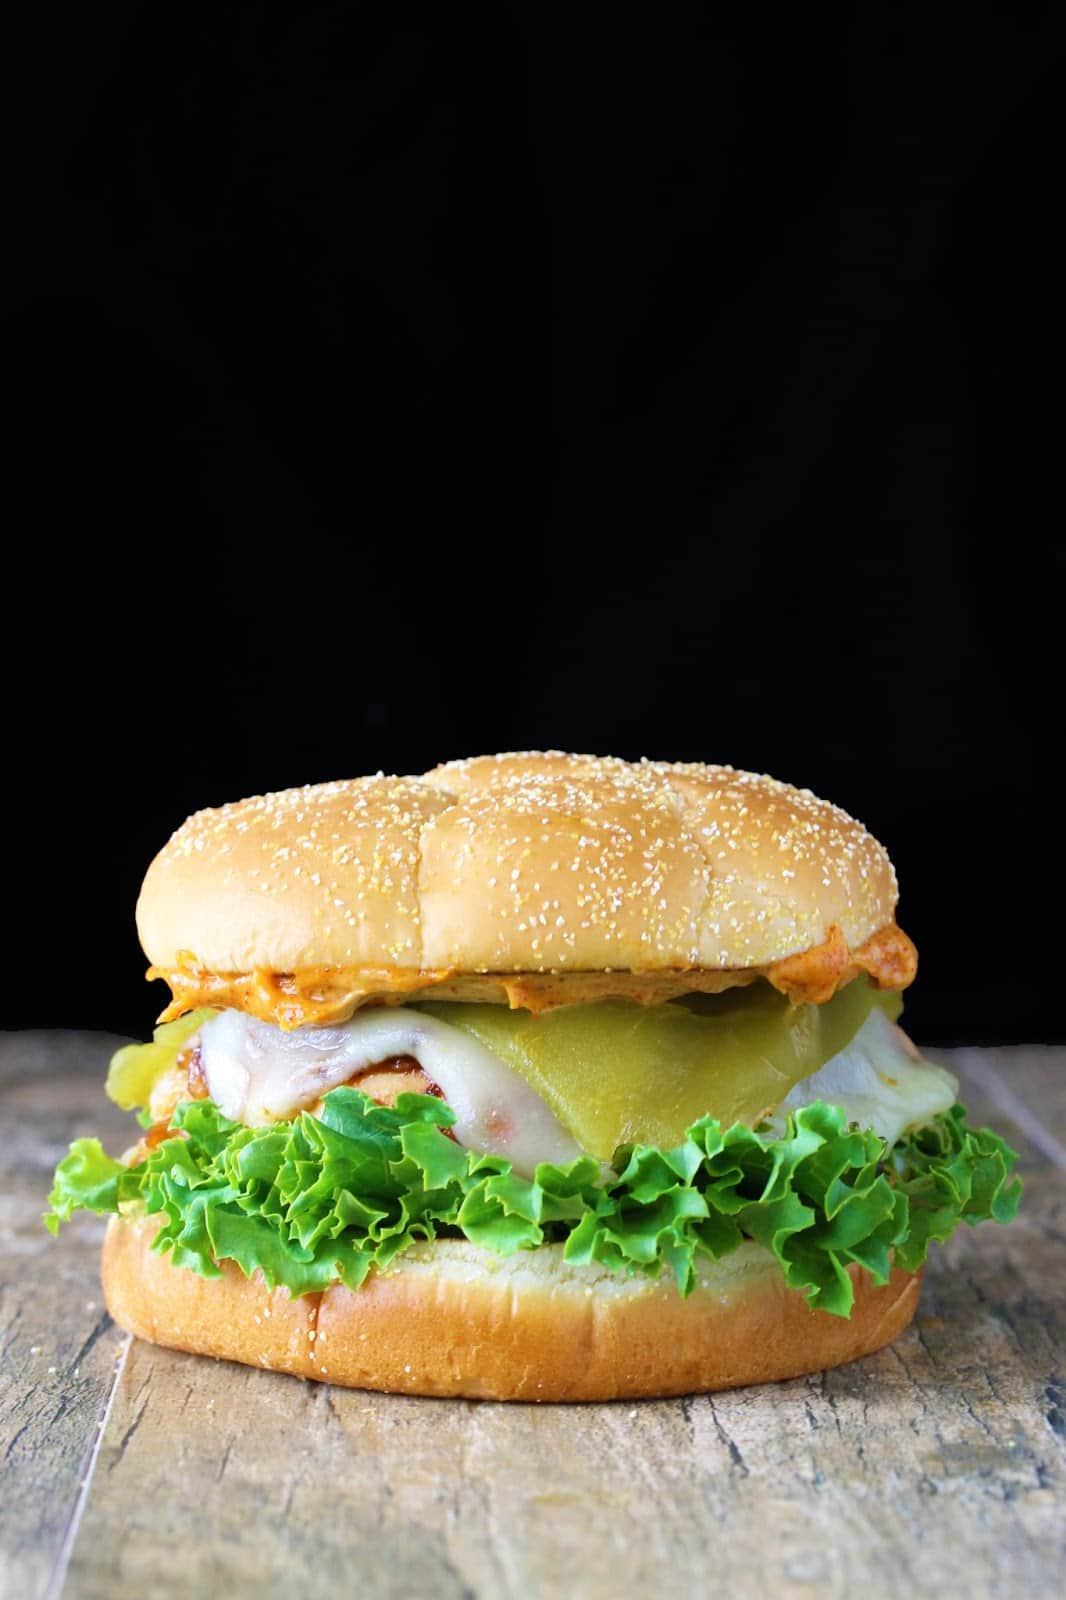 Santa fe chicken sandwich on a wooden table with a black background